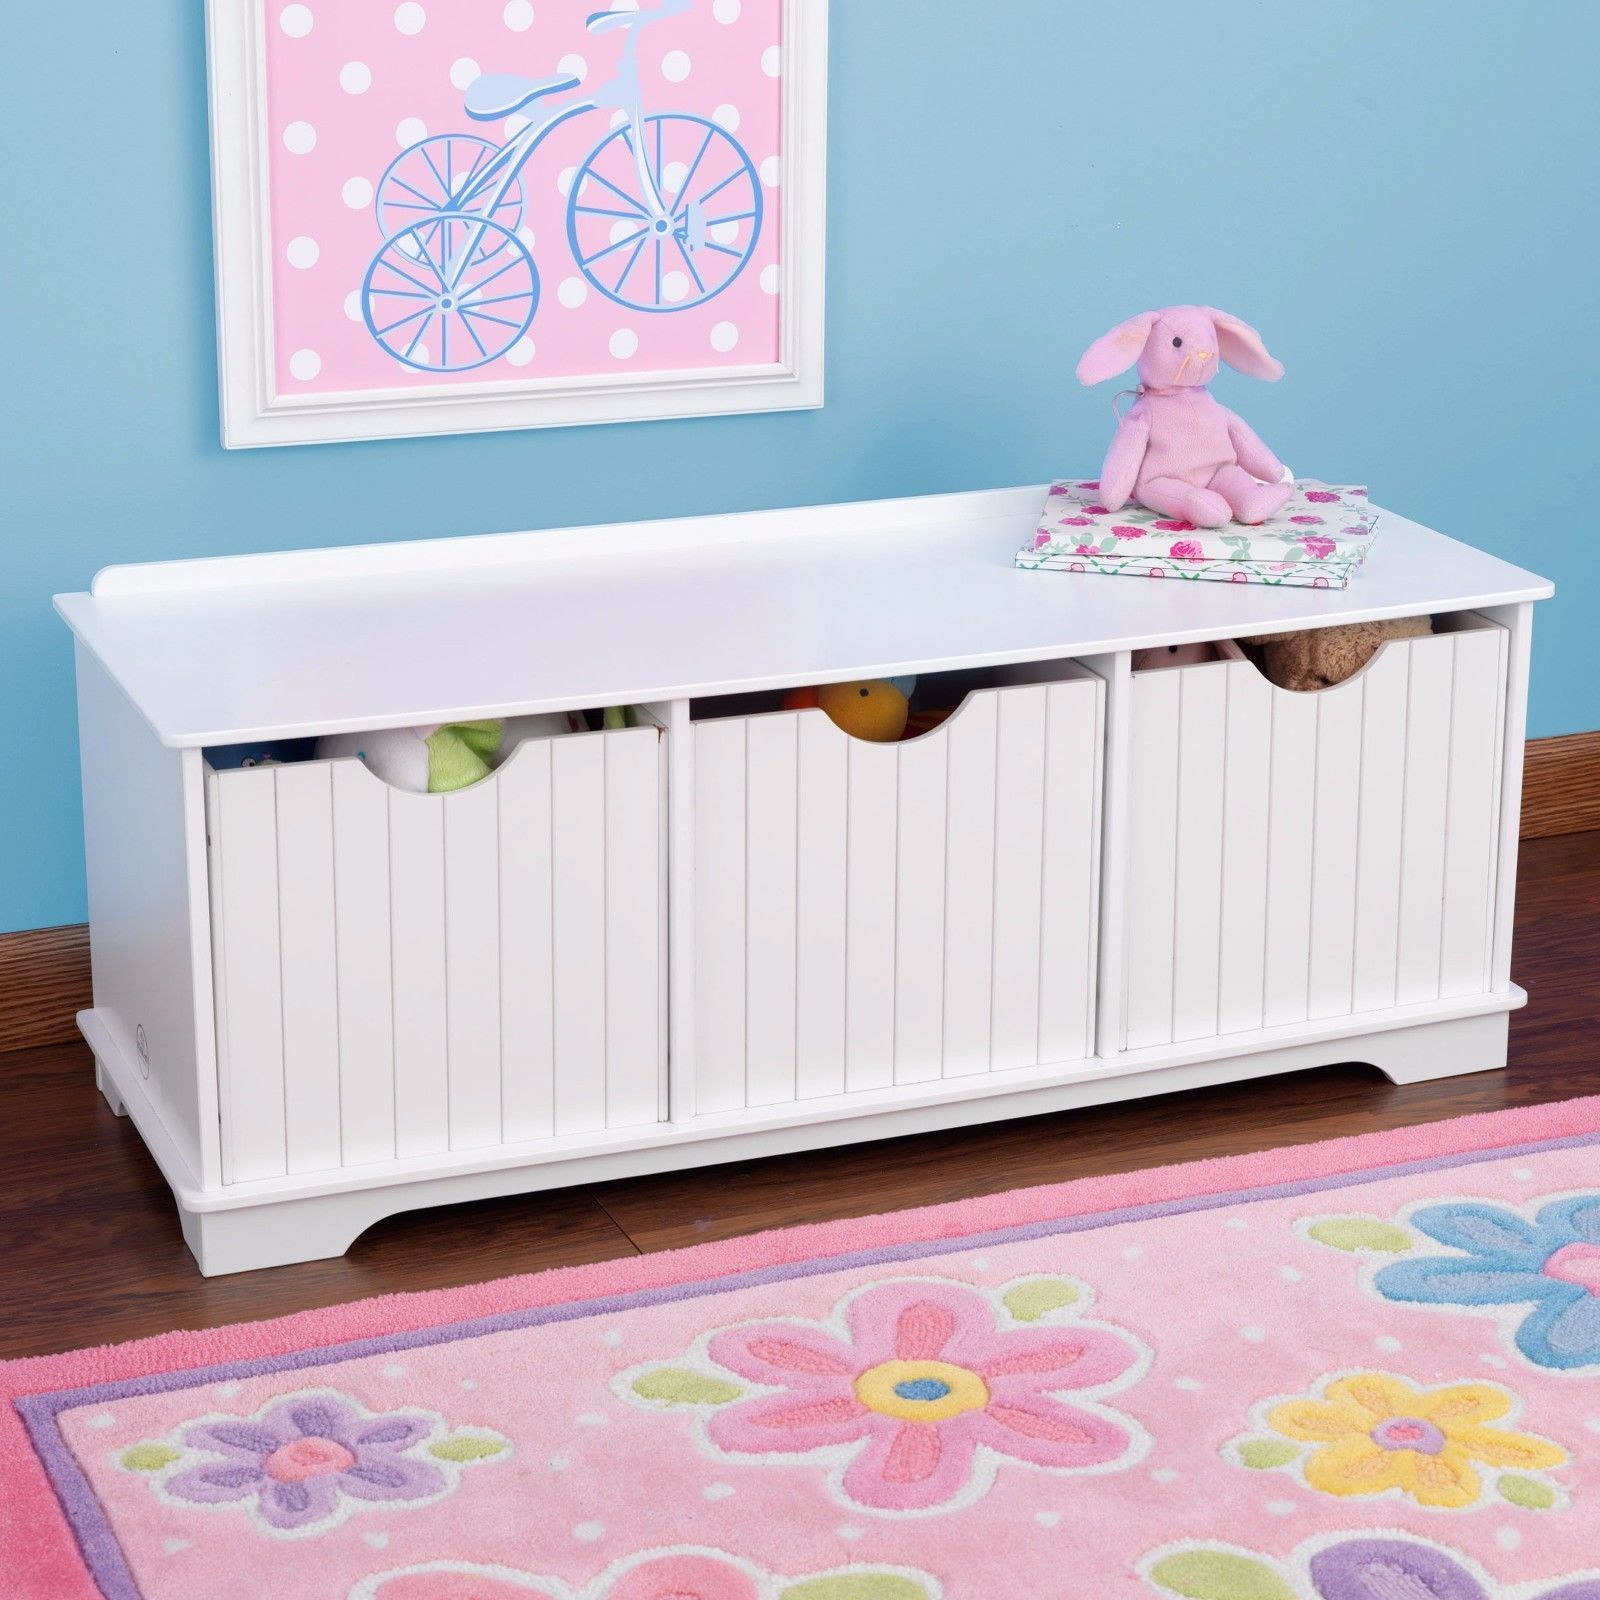 Childrens Storage Unit Kids Toy Box Storage Bench White Pastel